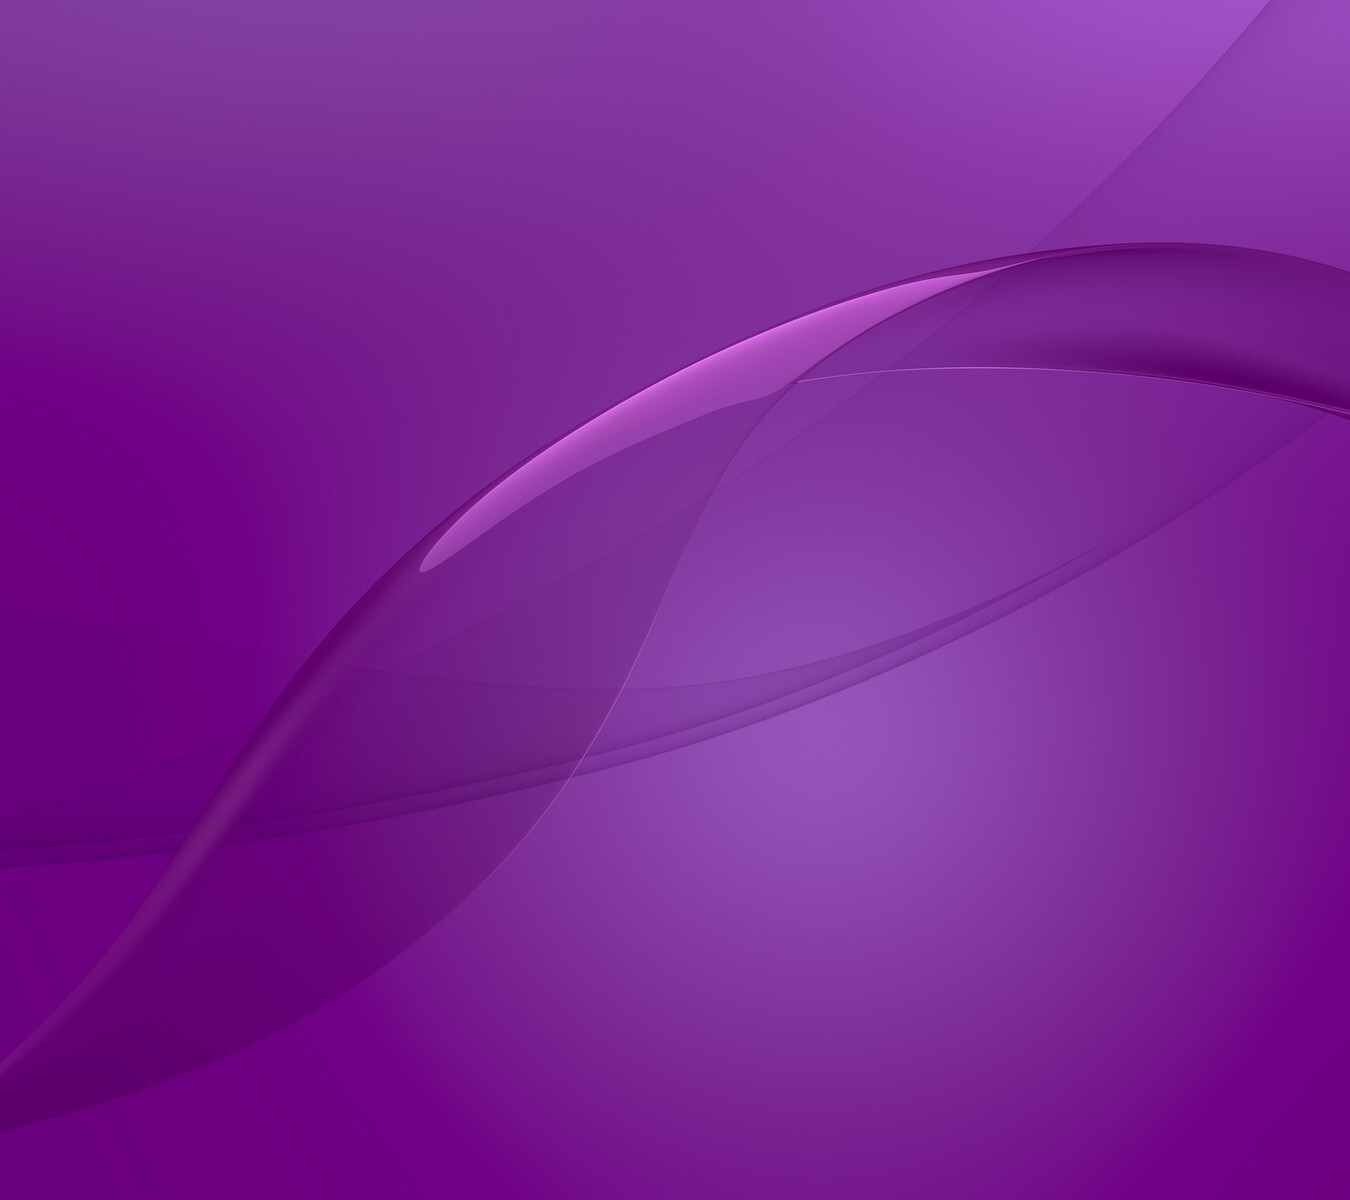 Hd wallpaper xperia z3 - Xperia Z3 Wallpapers Image From Download All Official Sony Xperia Z3 Wallpapers Here